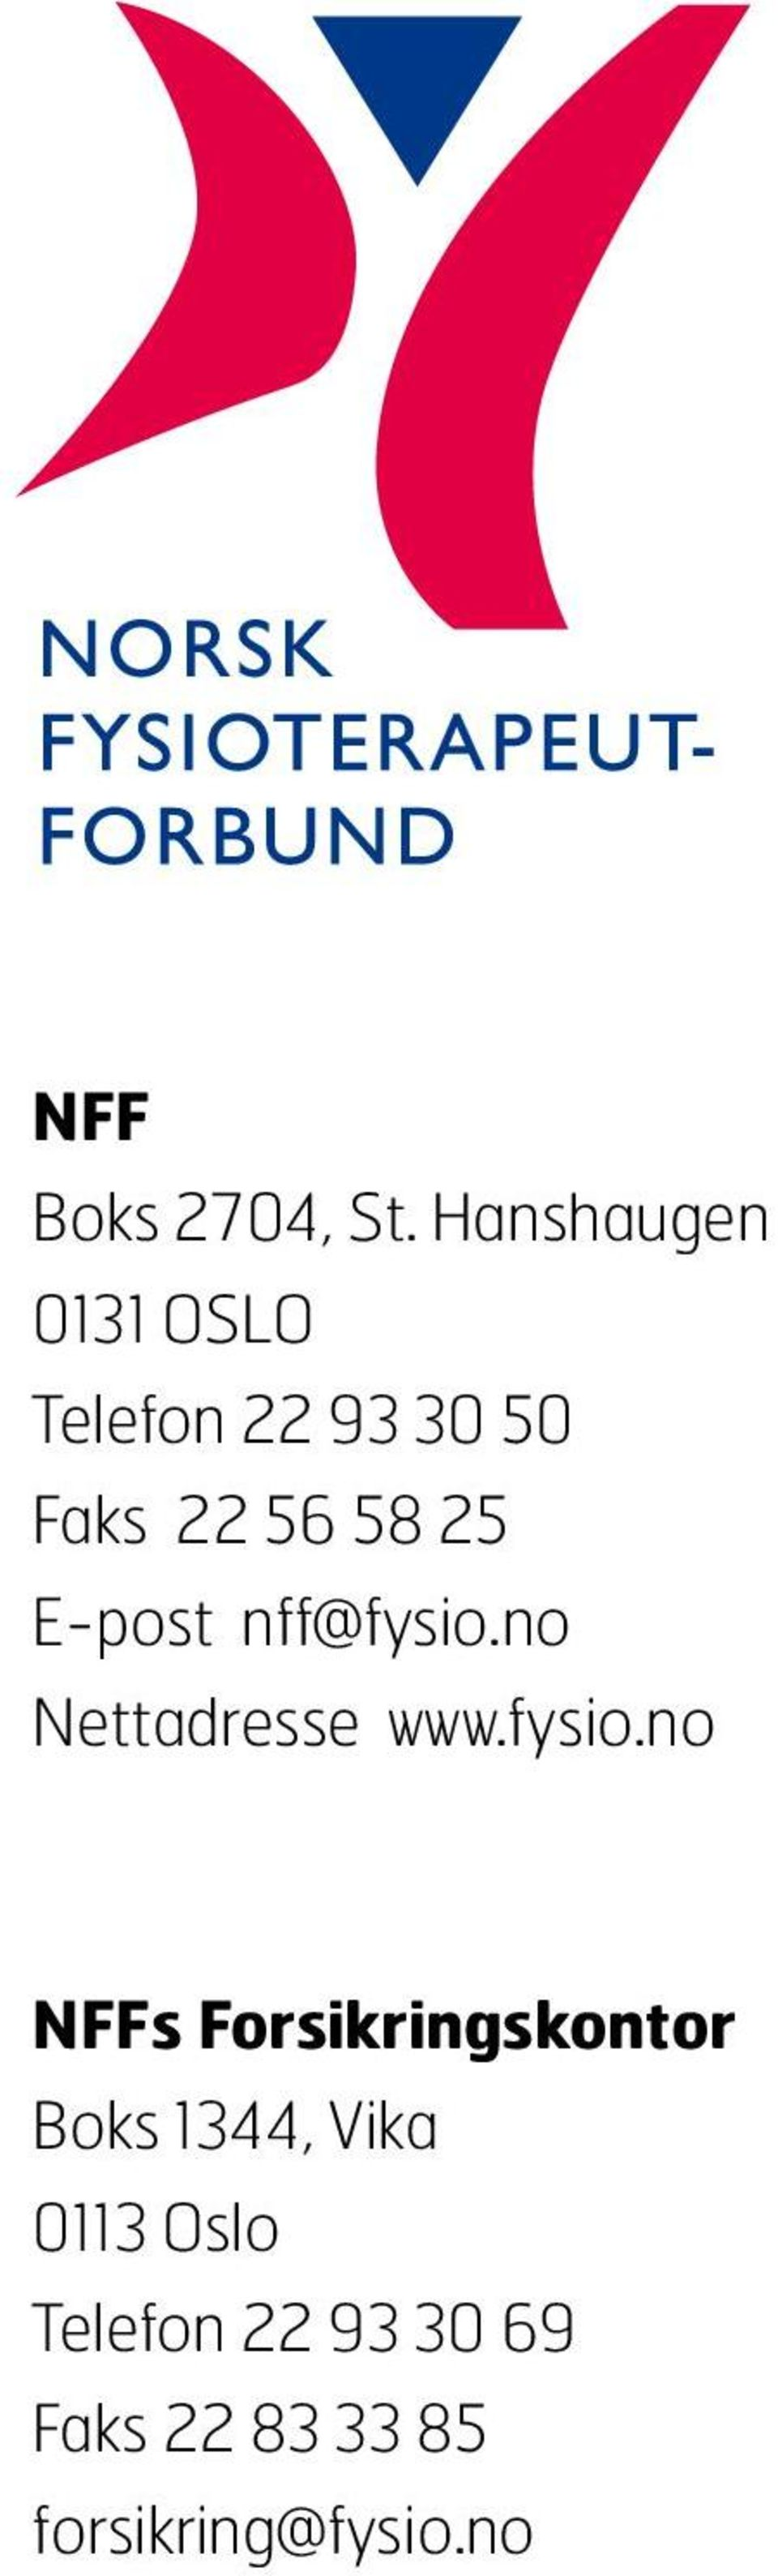 25 E-post nff@fysio.